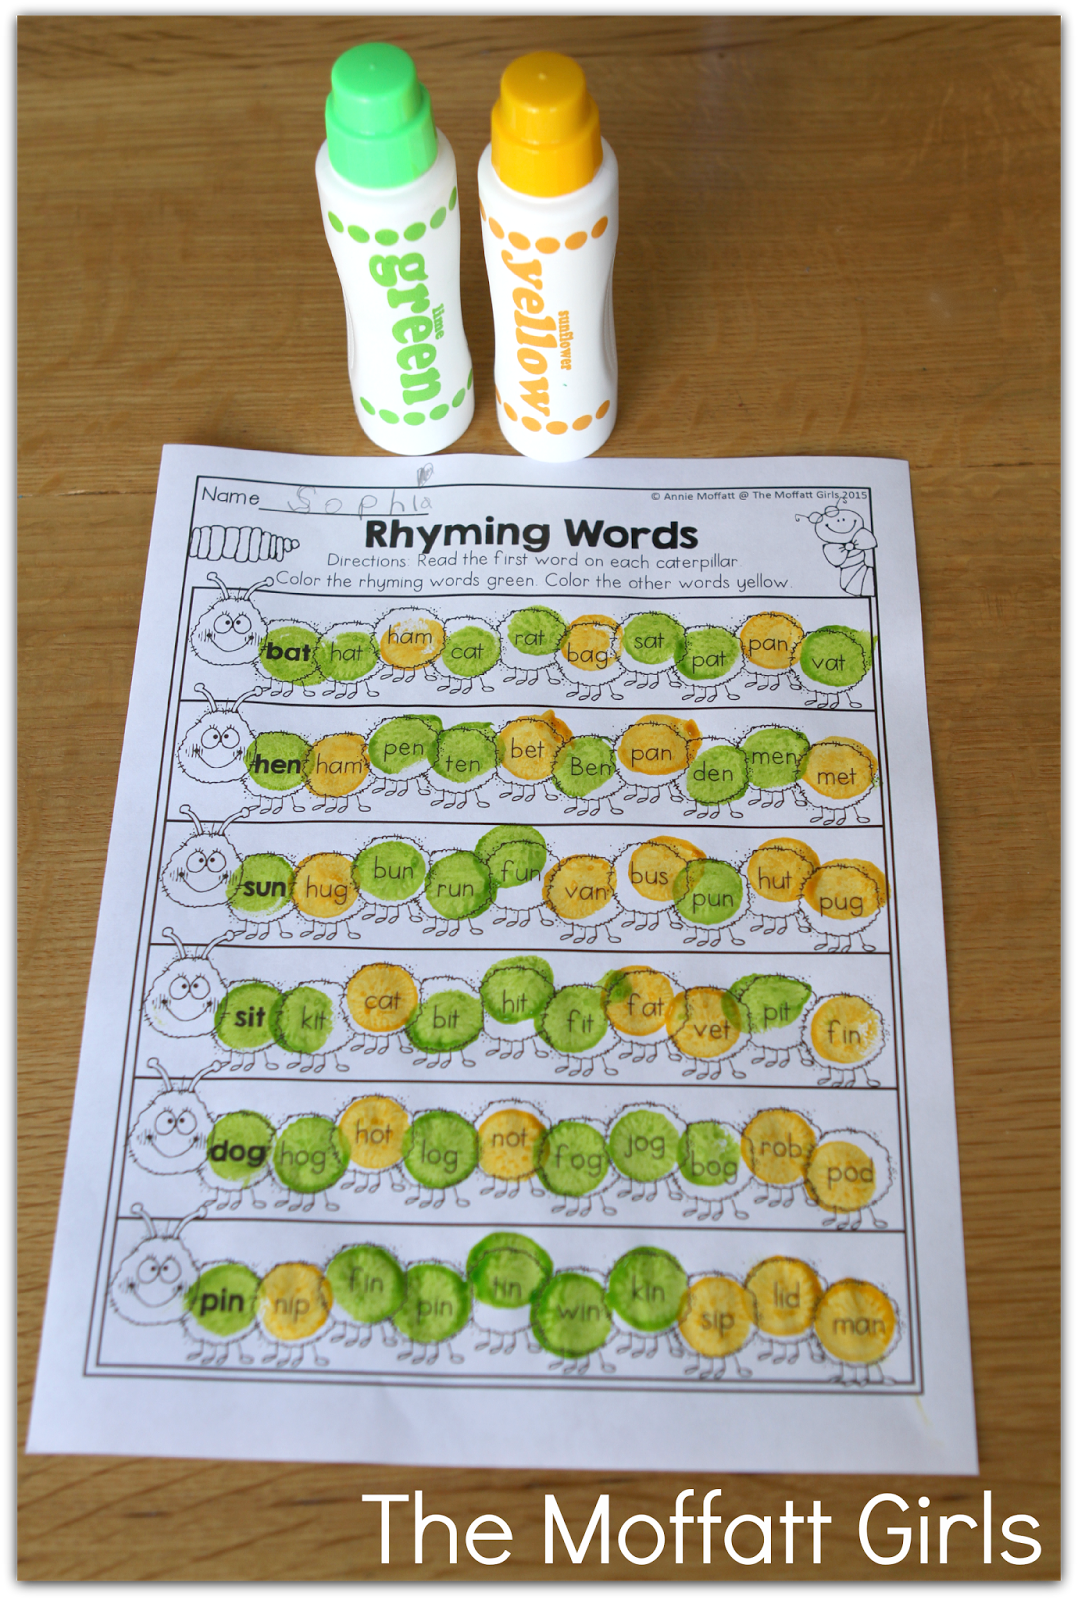 Rhyming Word Caterpillar Dot Mark The Words That Rhyme So Many Fun And Effective Printables